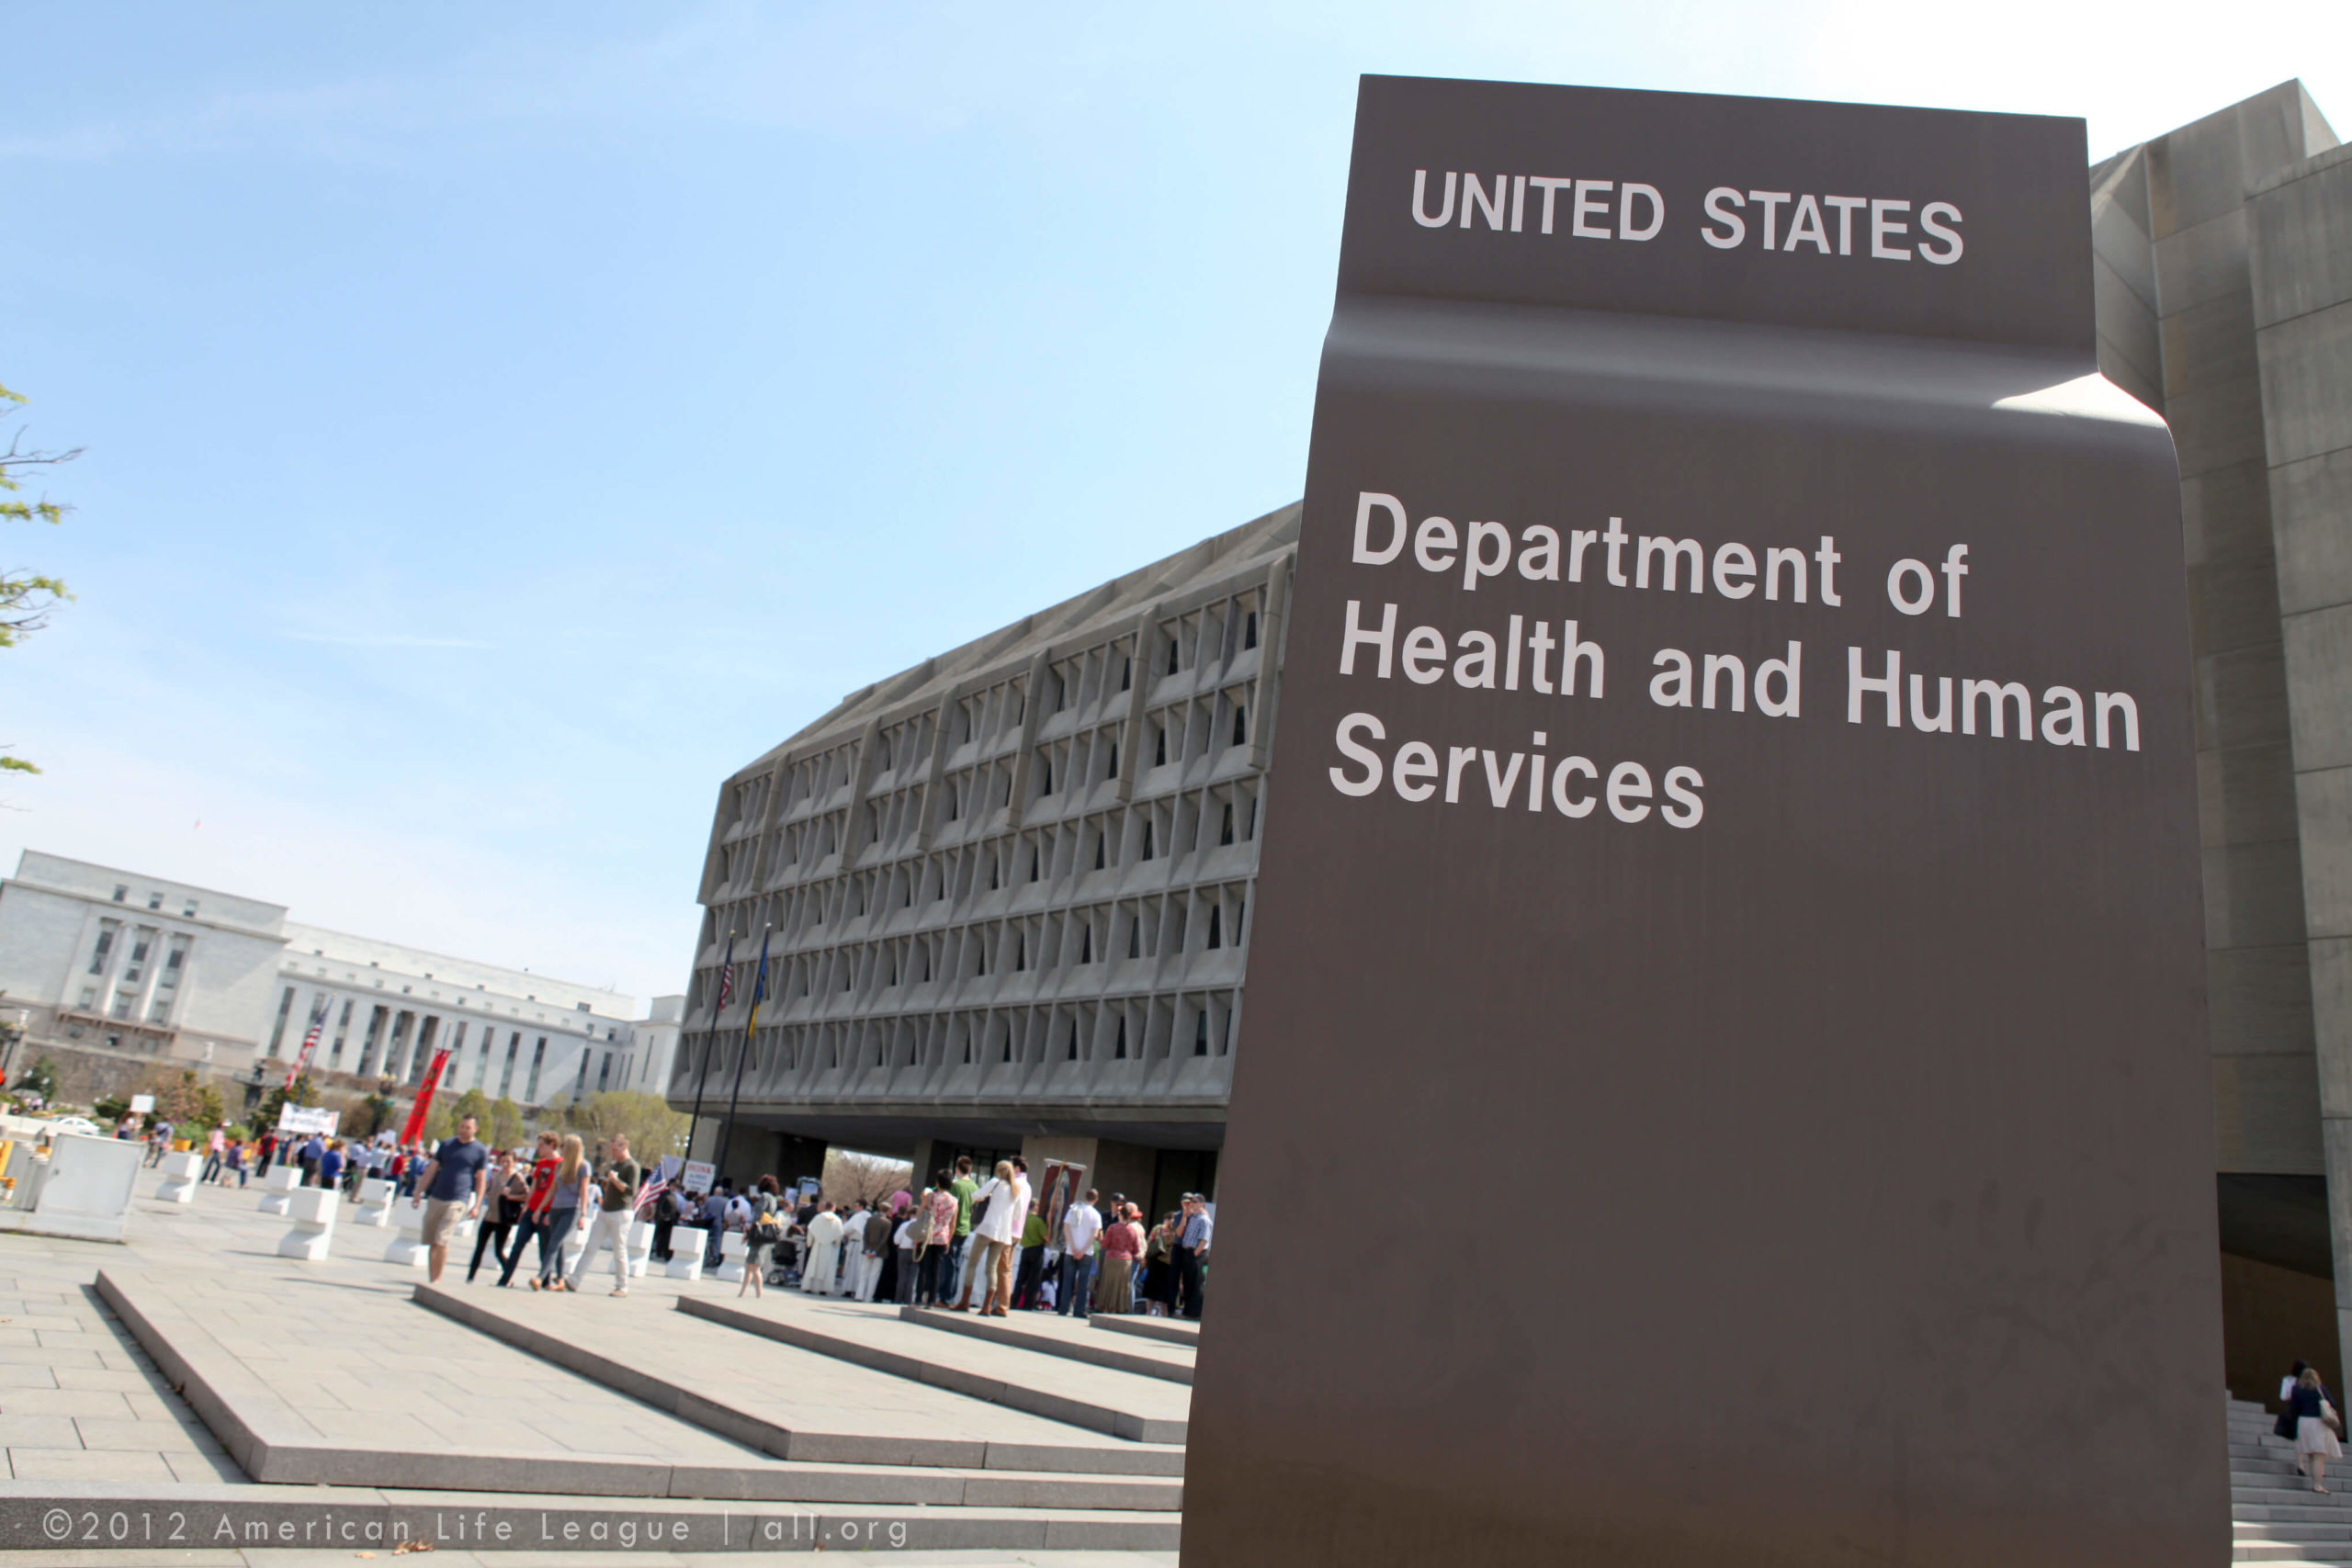 Signage of U.S. Department of Health and Human Services